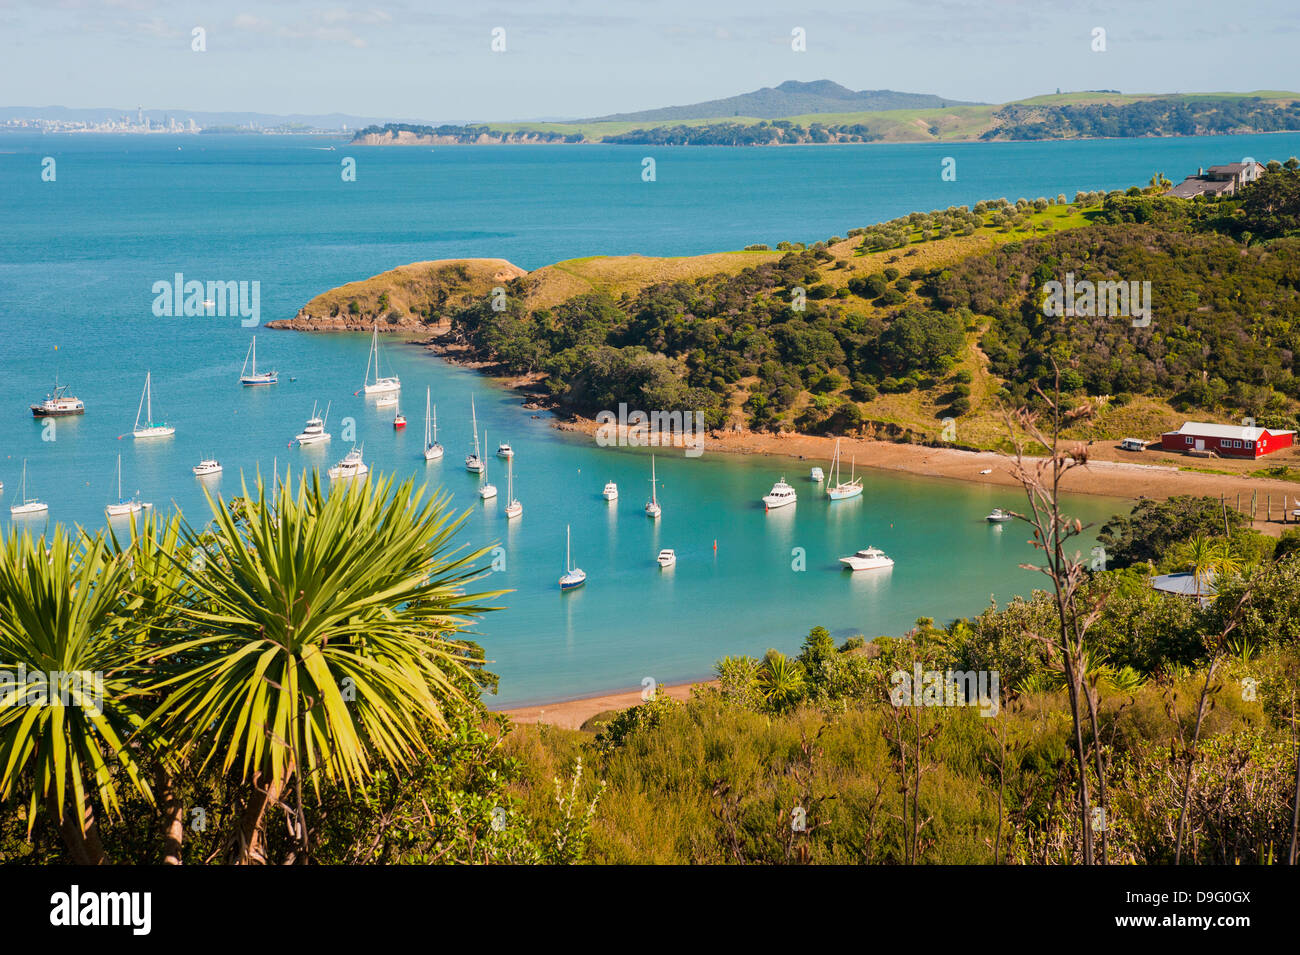 Sailing boats on Waiheke Island, Auckland, North Island, New Zealand - Stock Image